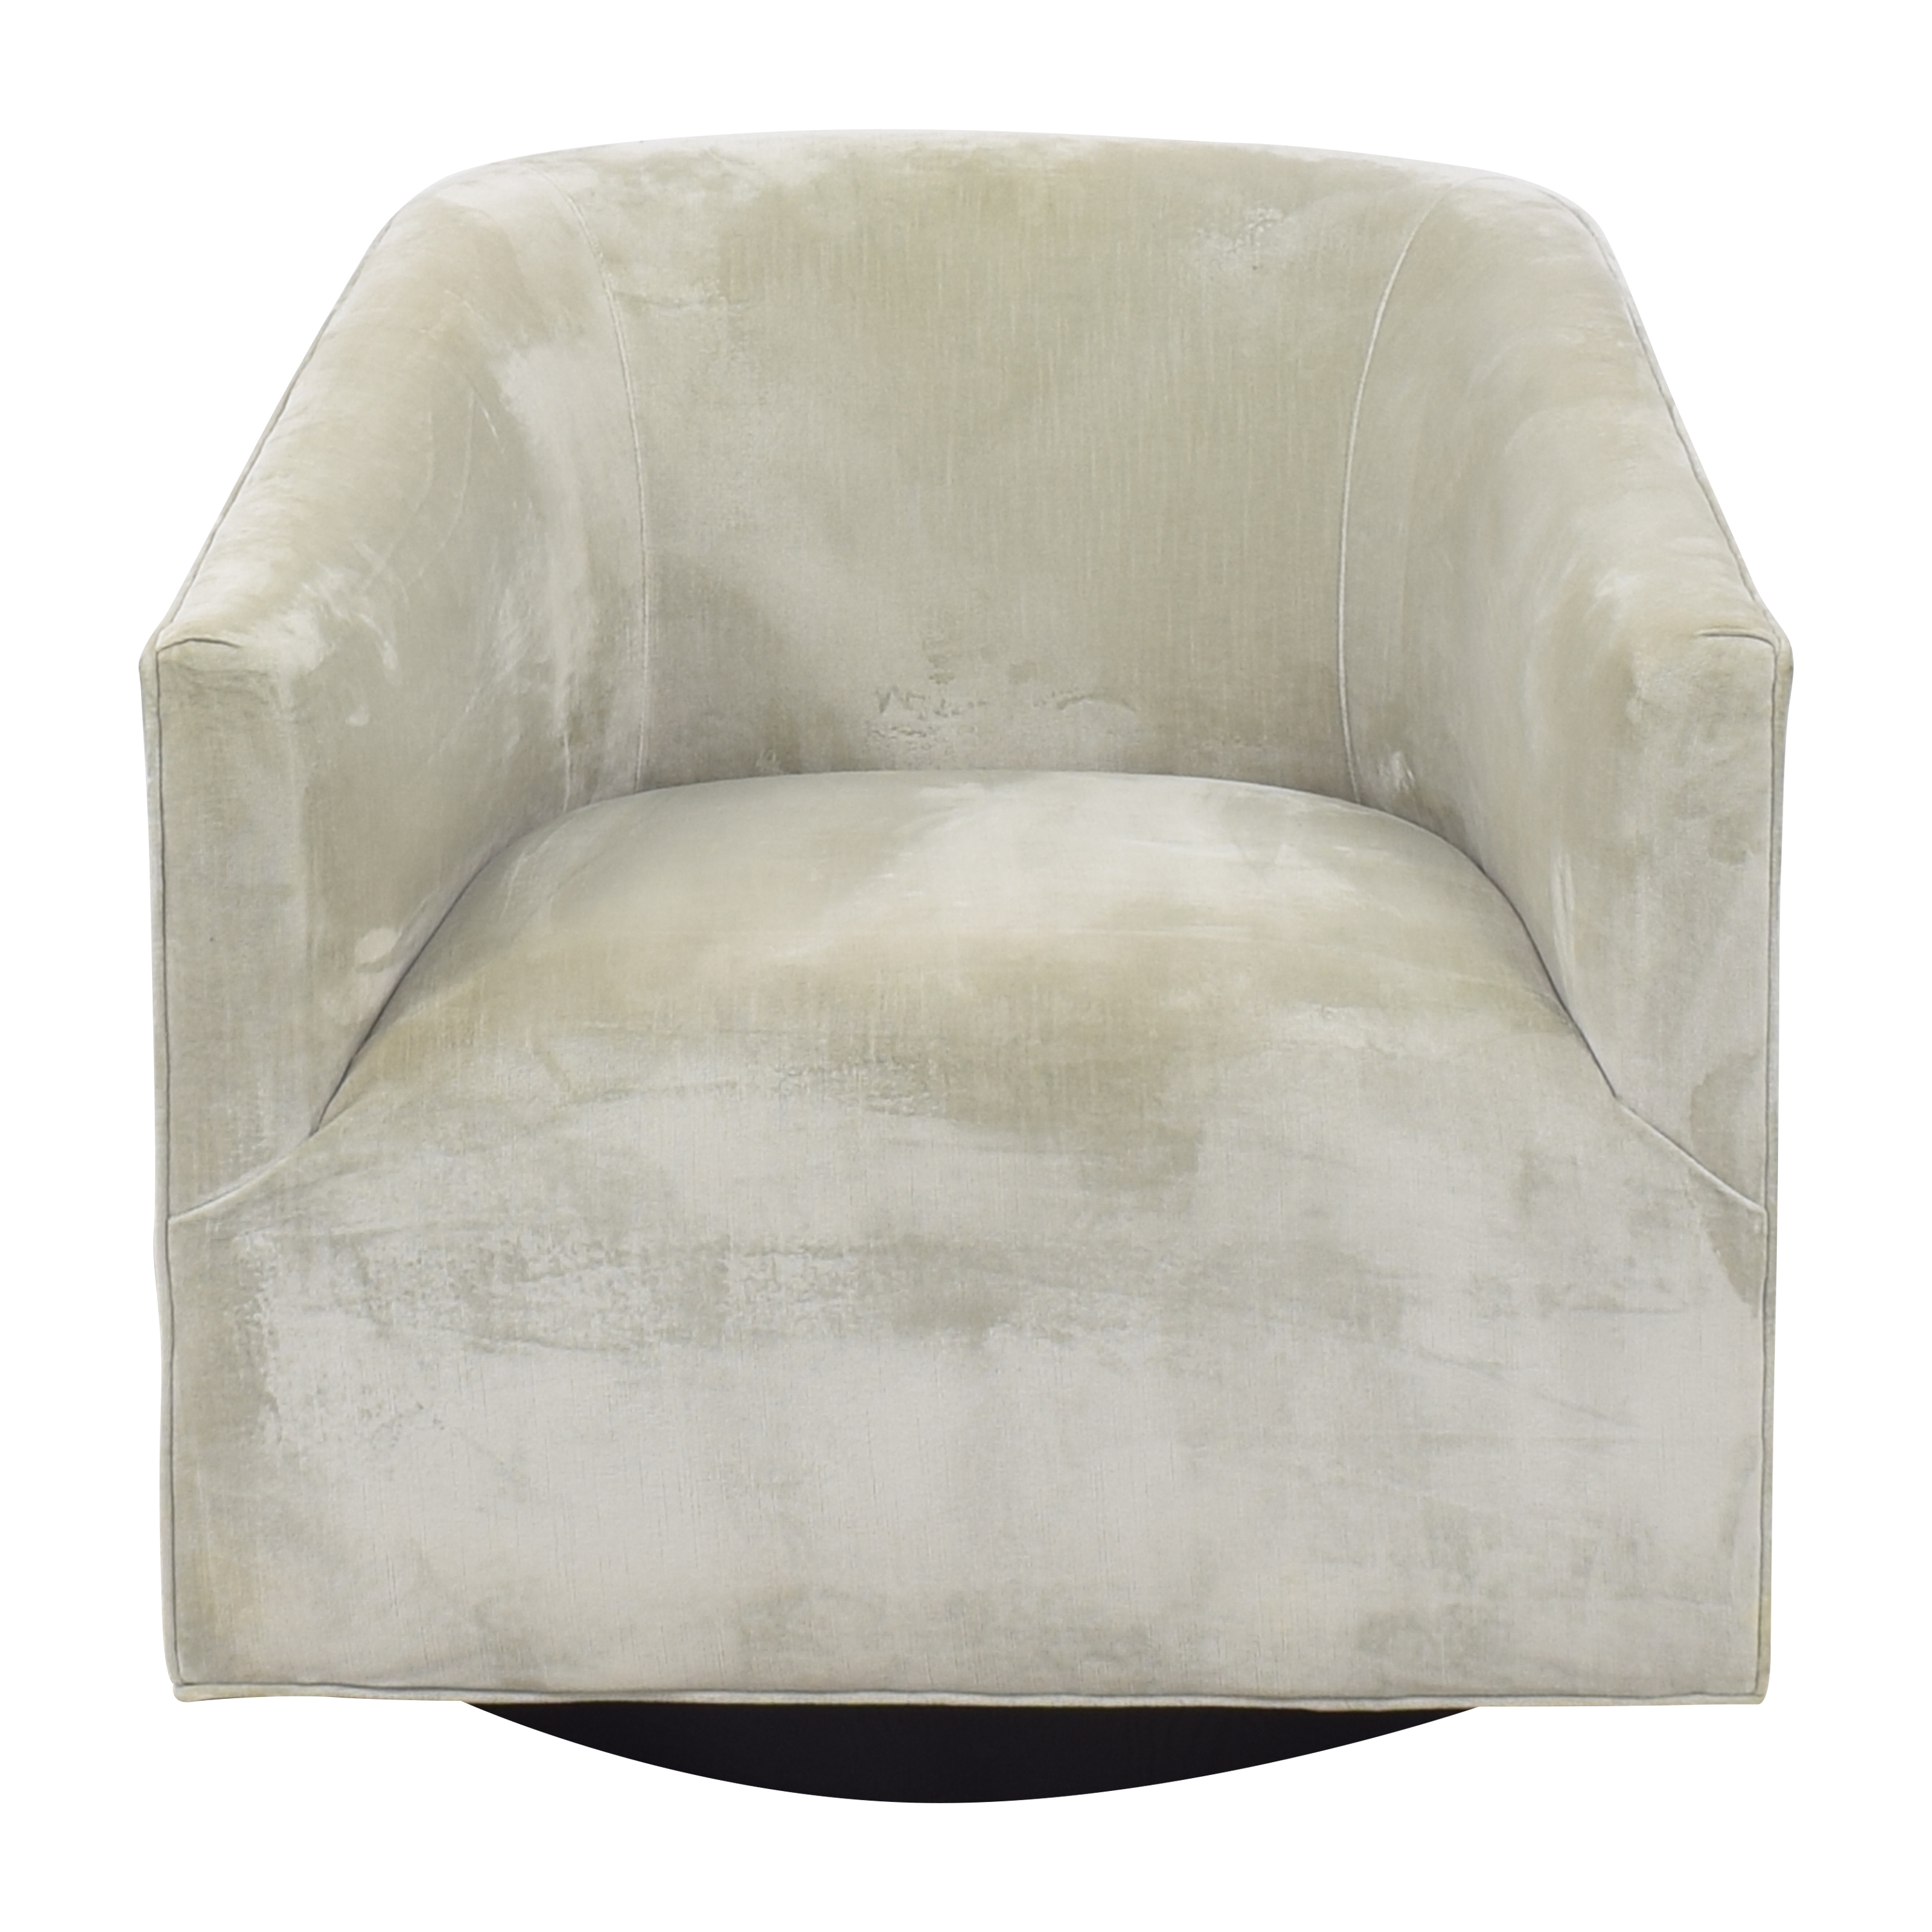 Restoration Hardware Restoration Hardware 1950s Italian Shelter Arm Swivel Chair for sale